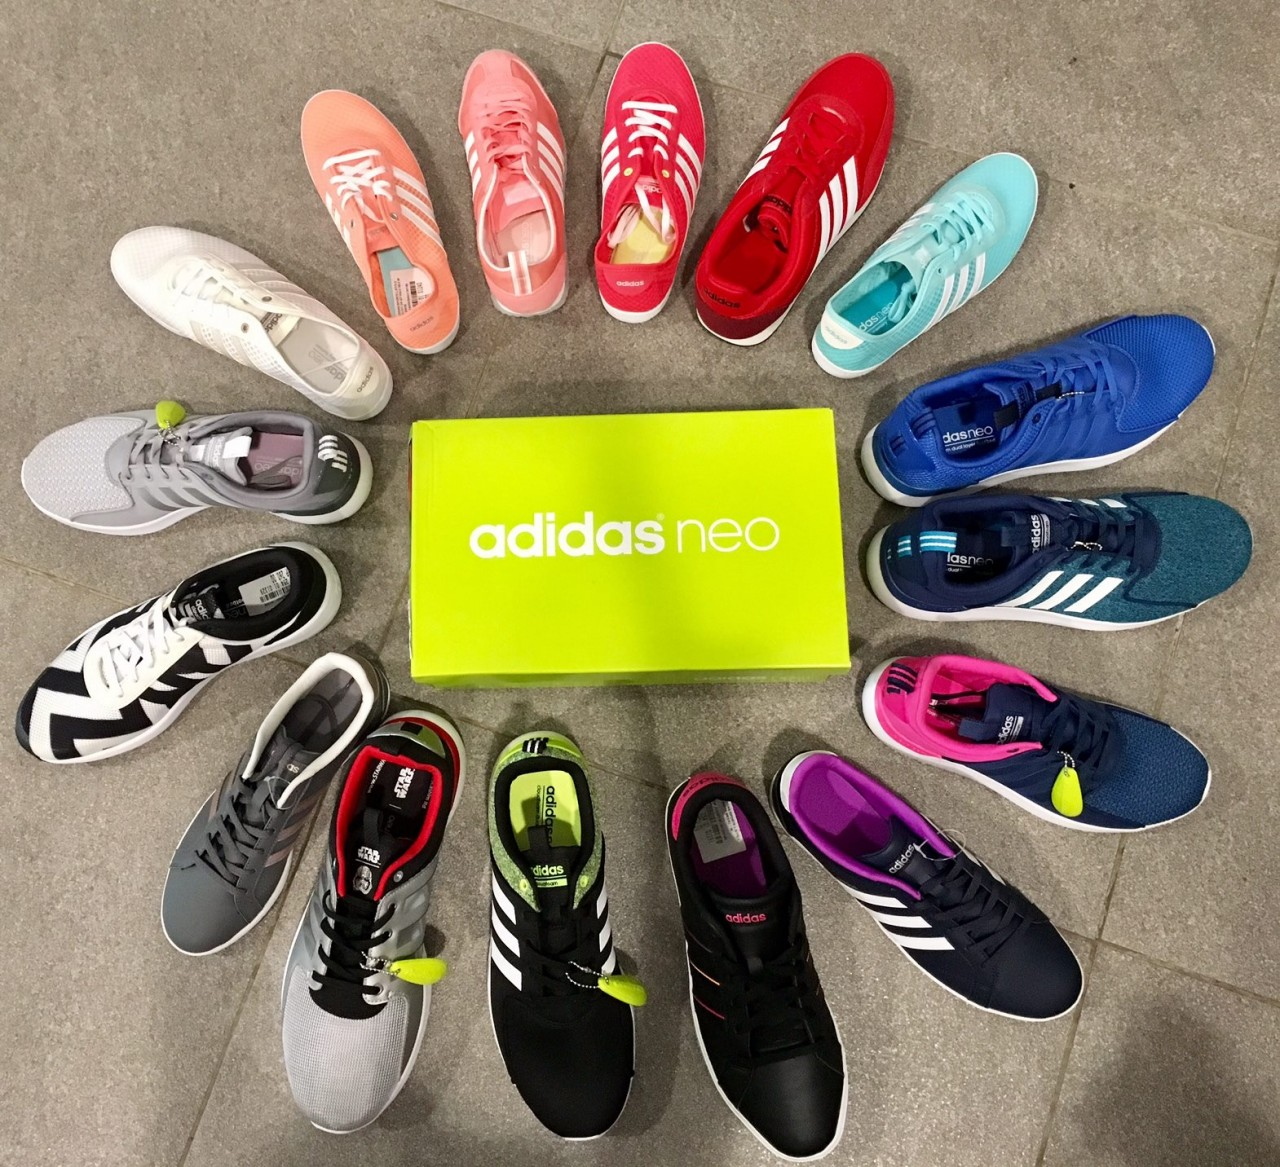 sports-direct-adidas-neo